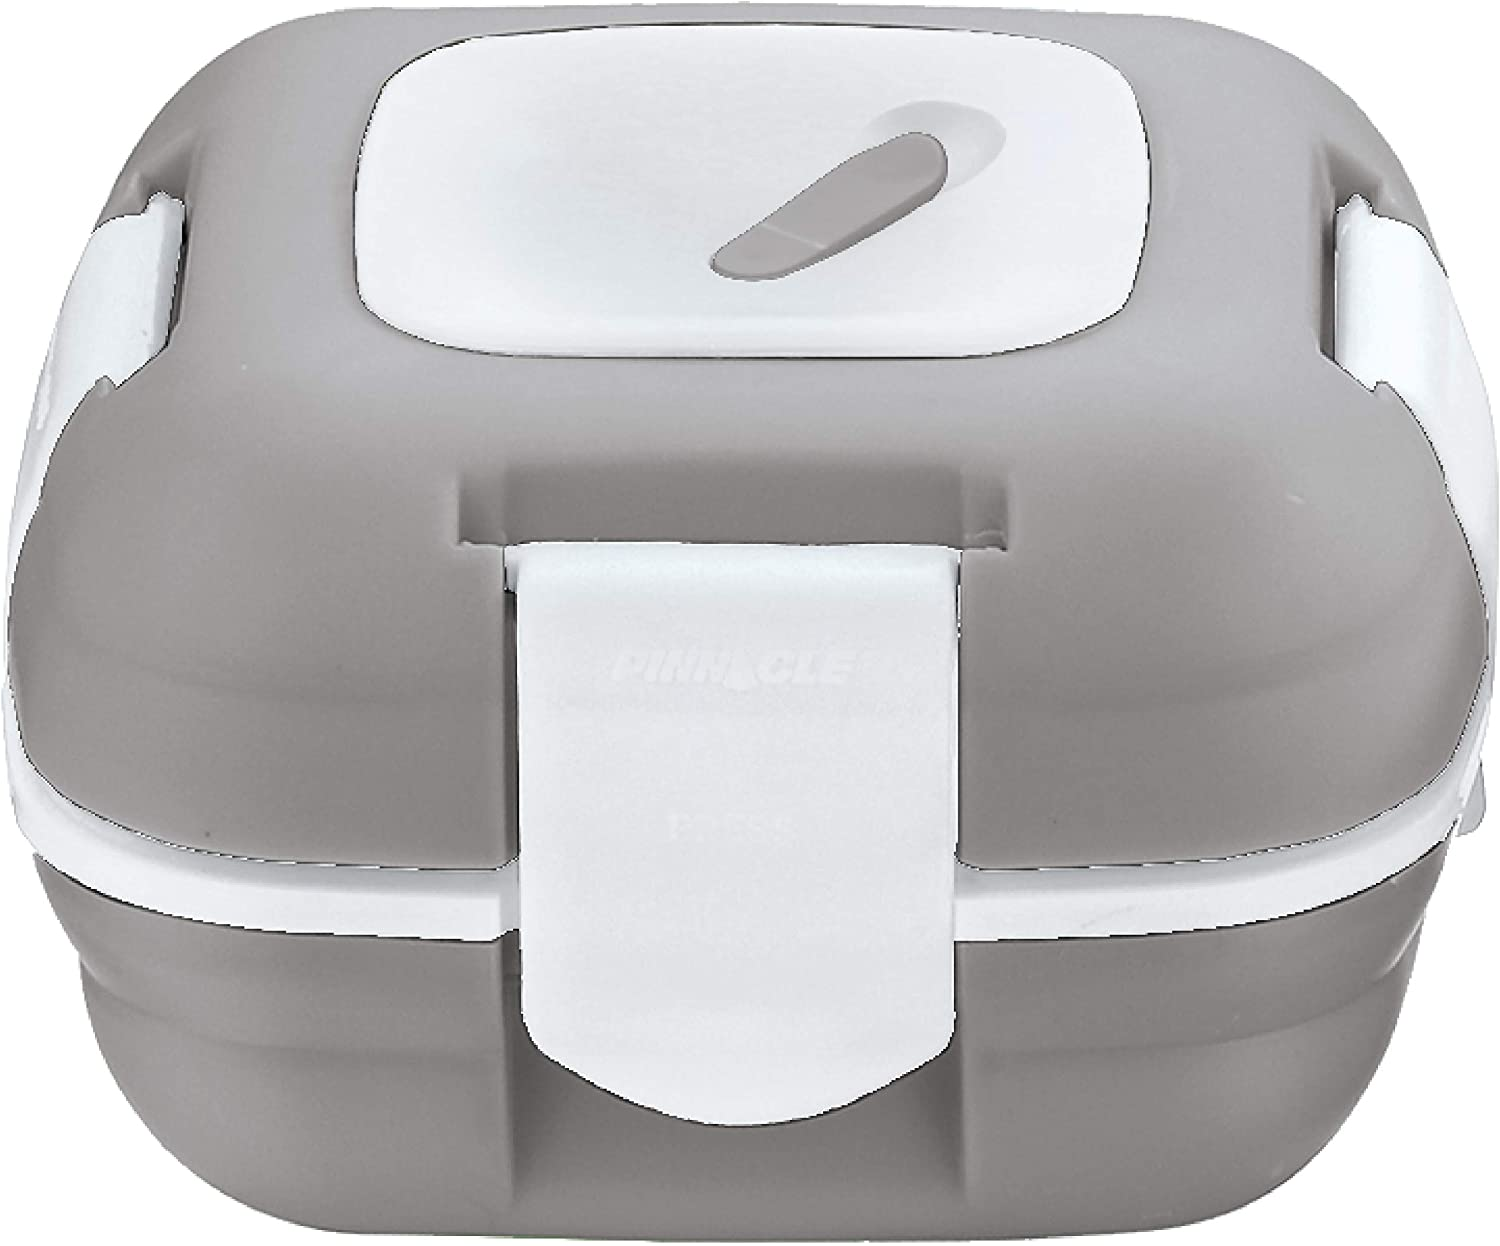 Lunch Box ~ Pinnacle Insulated Leak Proof Lunch Box for Adults and Kids - Thermal Lunch Container With NEW Heat Release Valve, 16 oz - Grey White